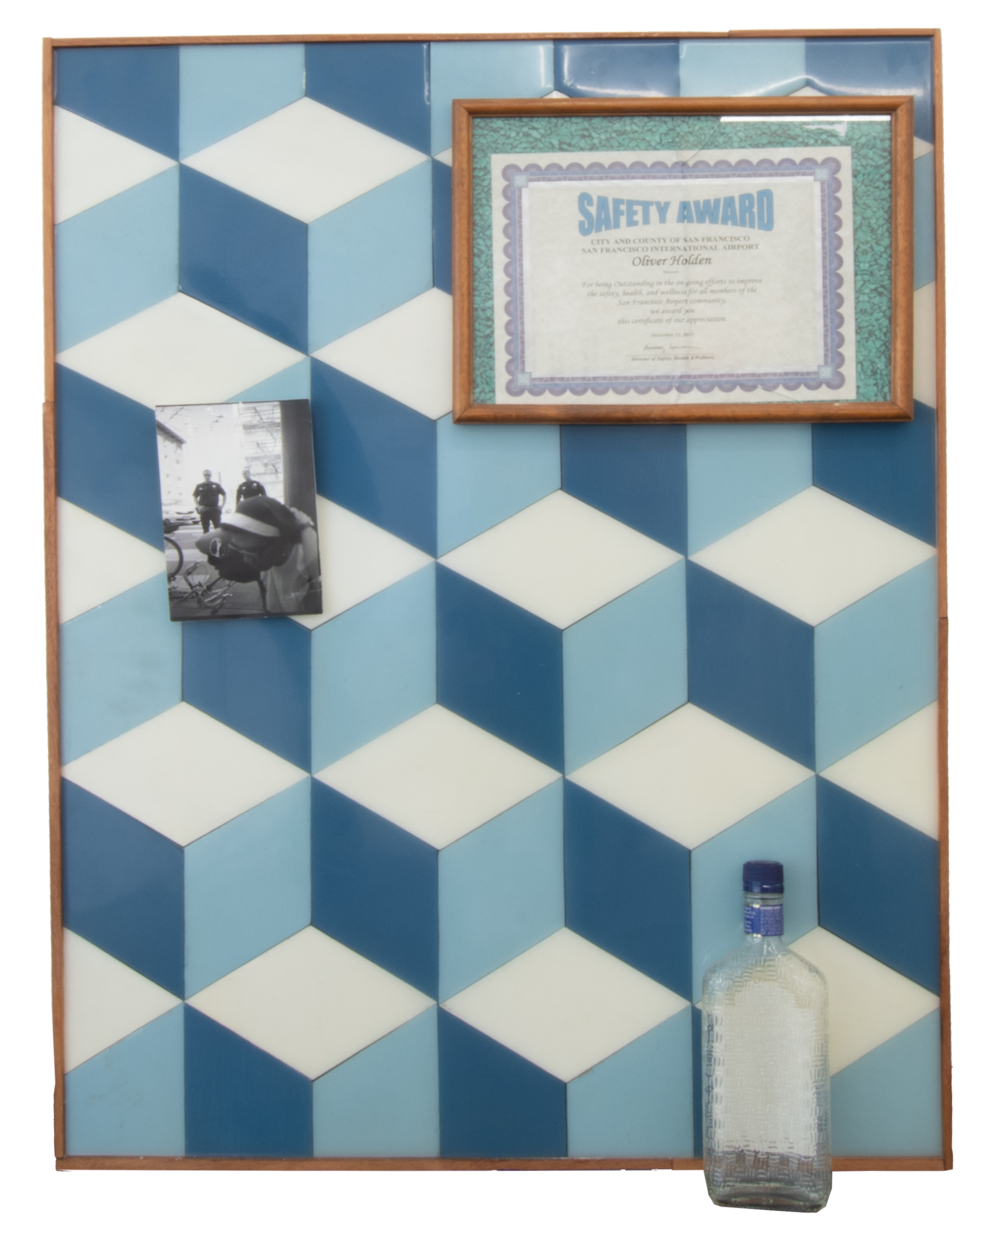 Safety Award,  2018, 36.25 x 27.5 x 4 inches, Acrylic painted wood and resin- on panel, Seagram's gin bottle, personal photograph, and safety award